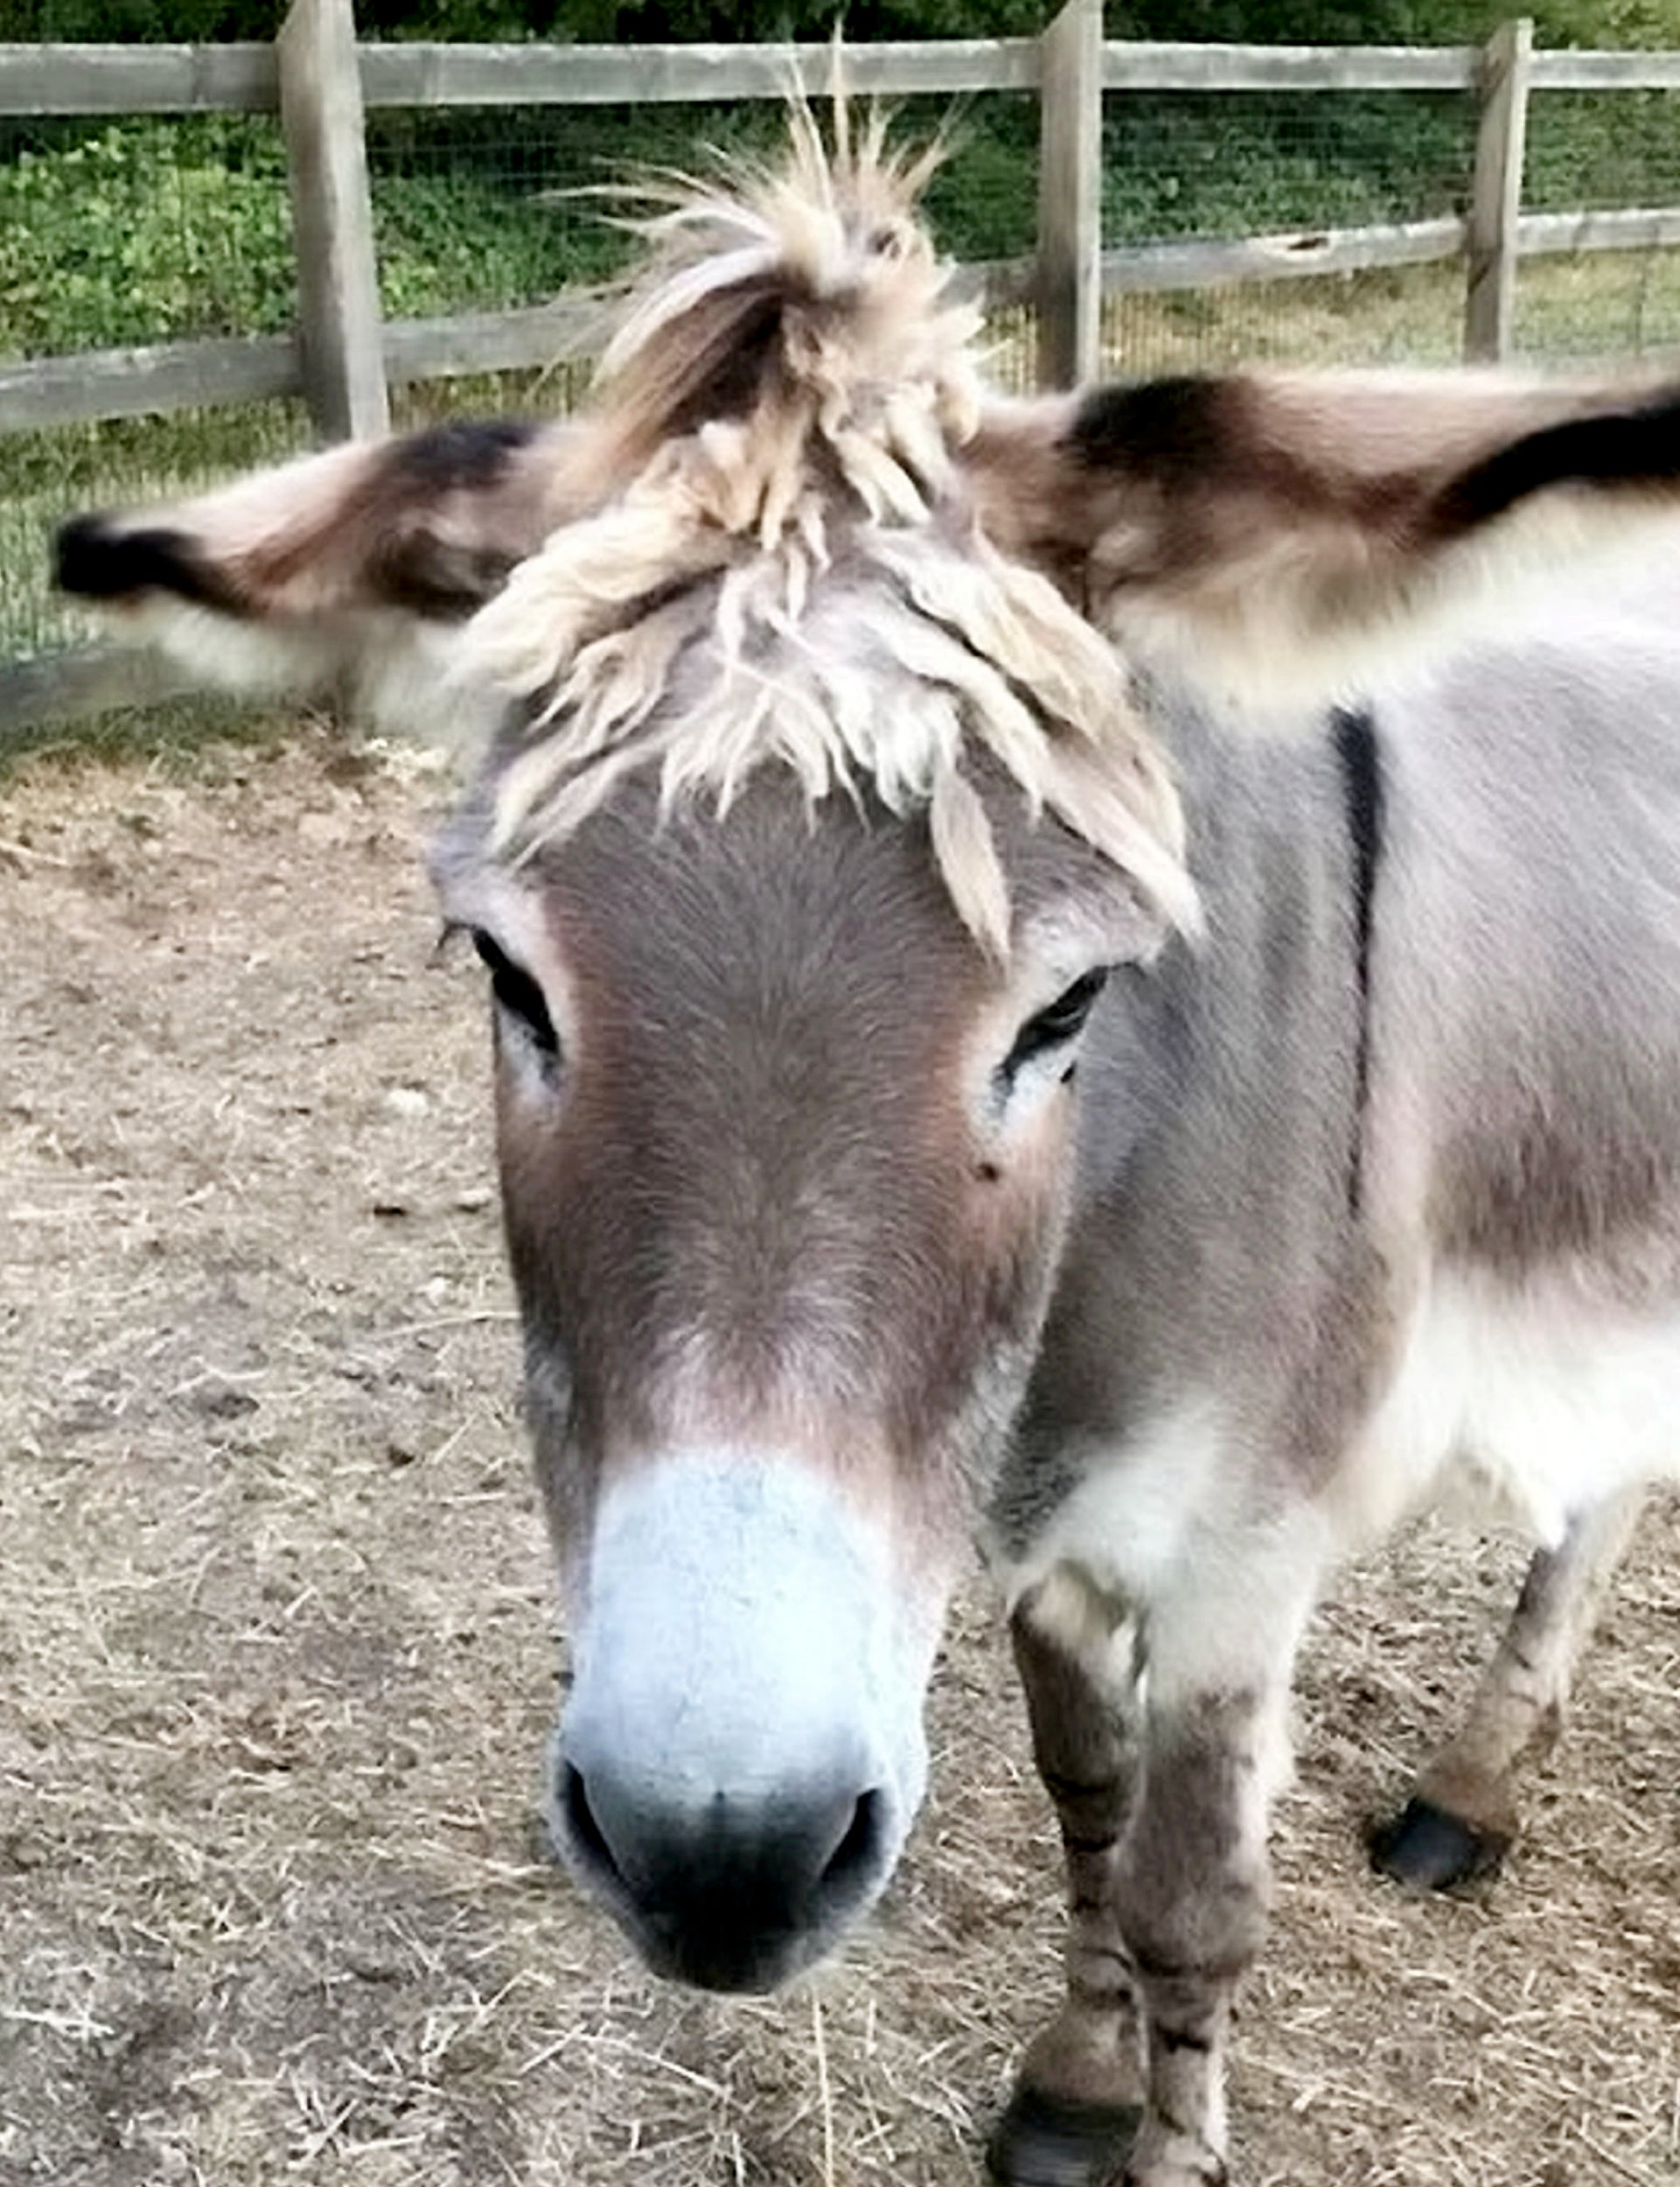 Donkey that retired after giving children rides for 20 years is